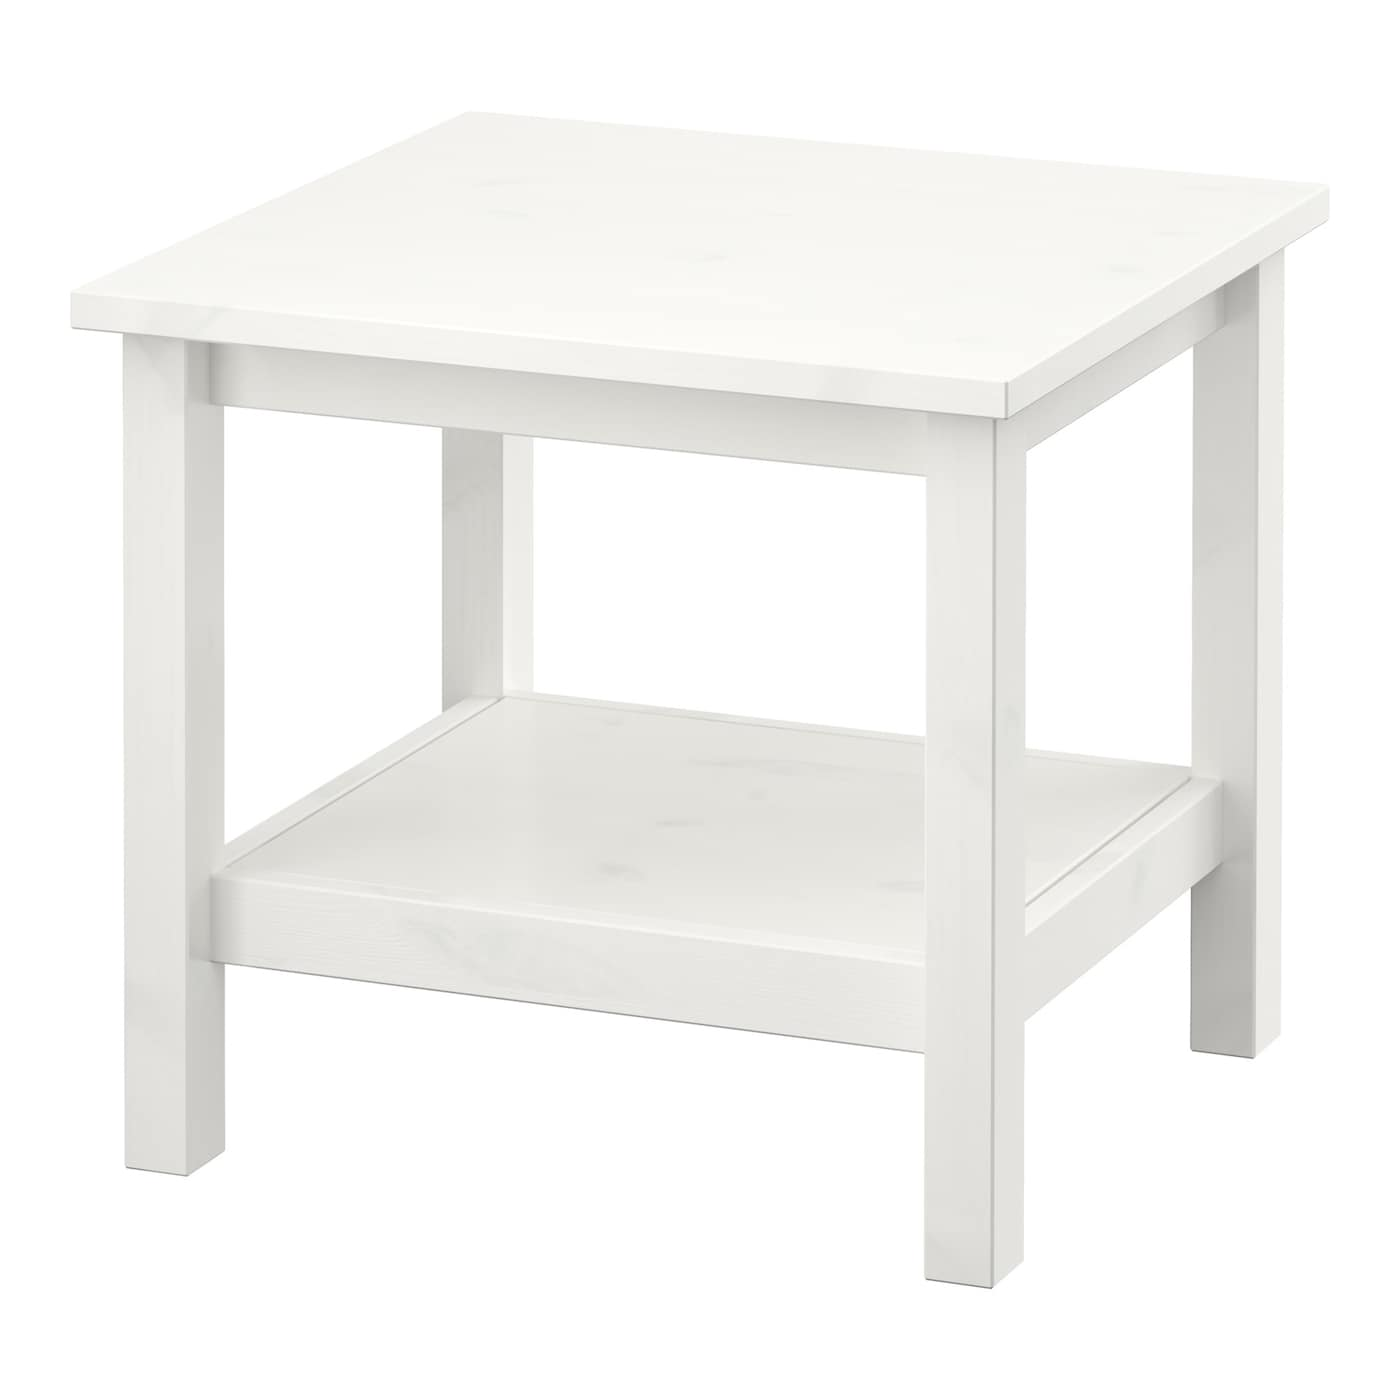 hemnes side table white stain 55 x 55 cm ikea. Black Bedroom Furniture Sets. Home Design Ideas